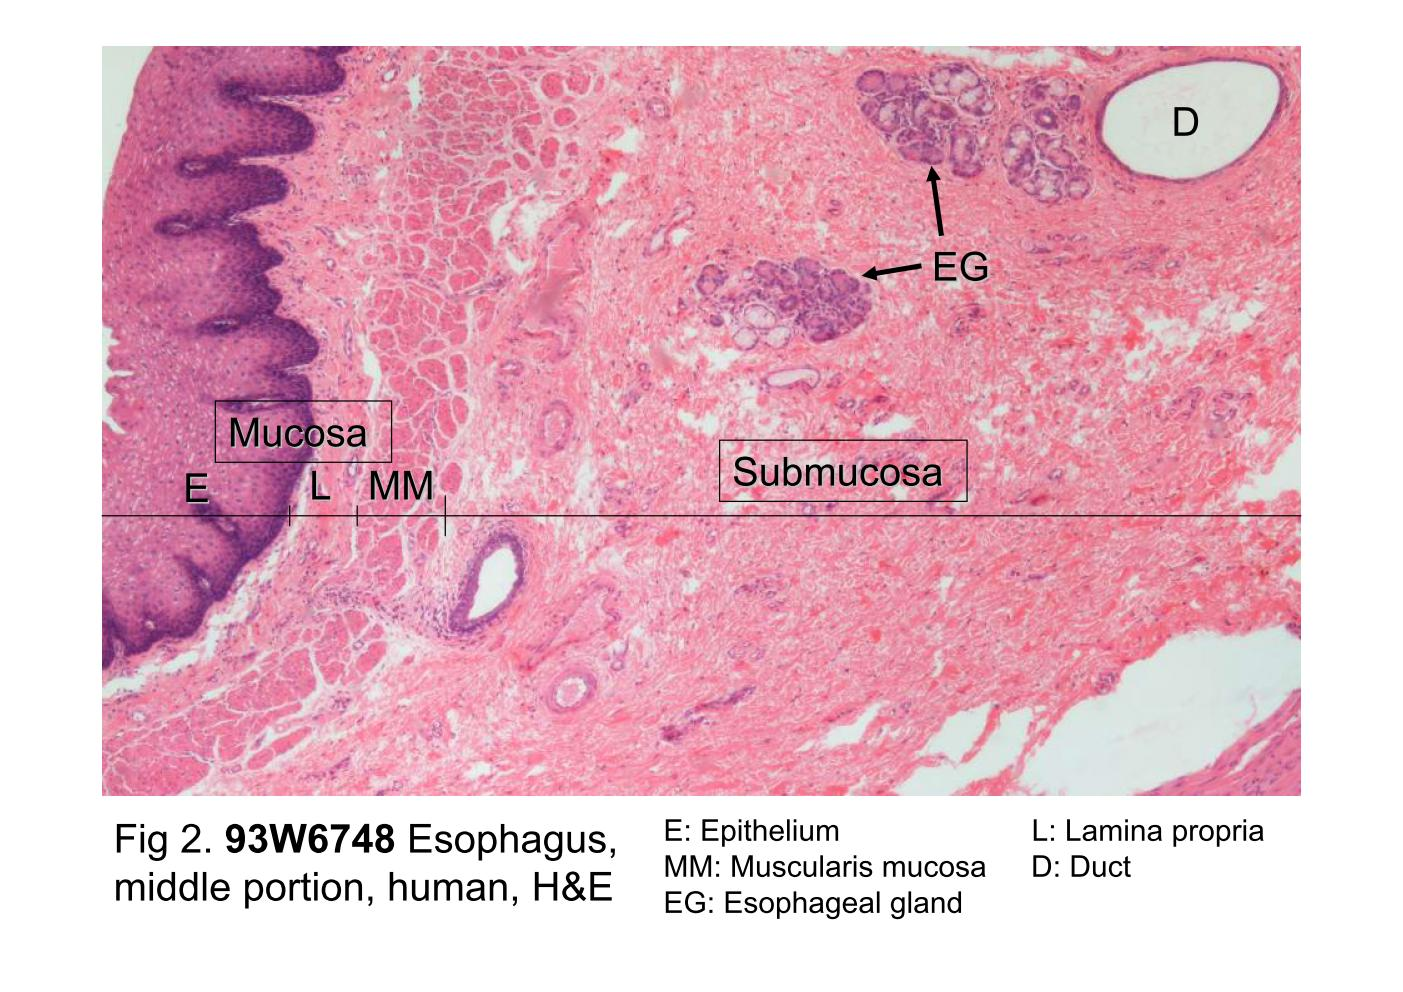 Block10-1/Fig 2. 93W6748 The microscopic structure of the esophagus.